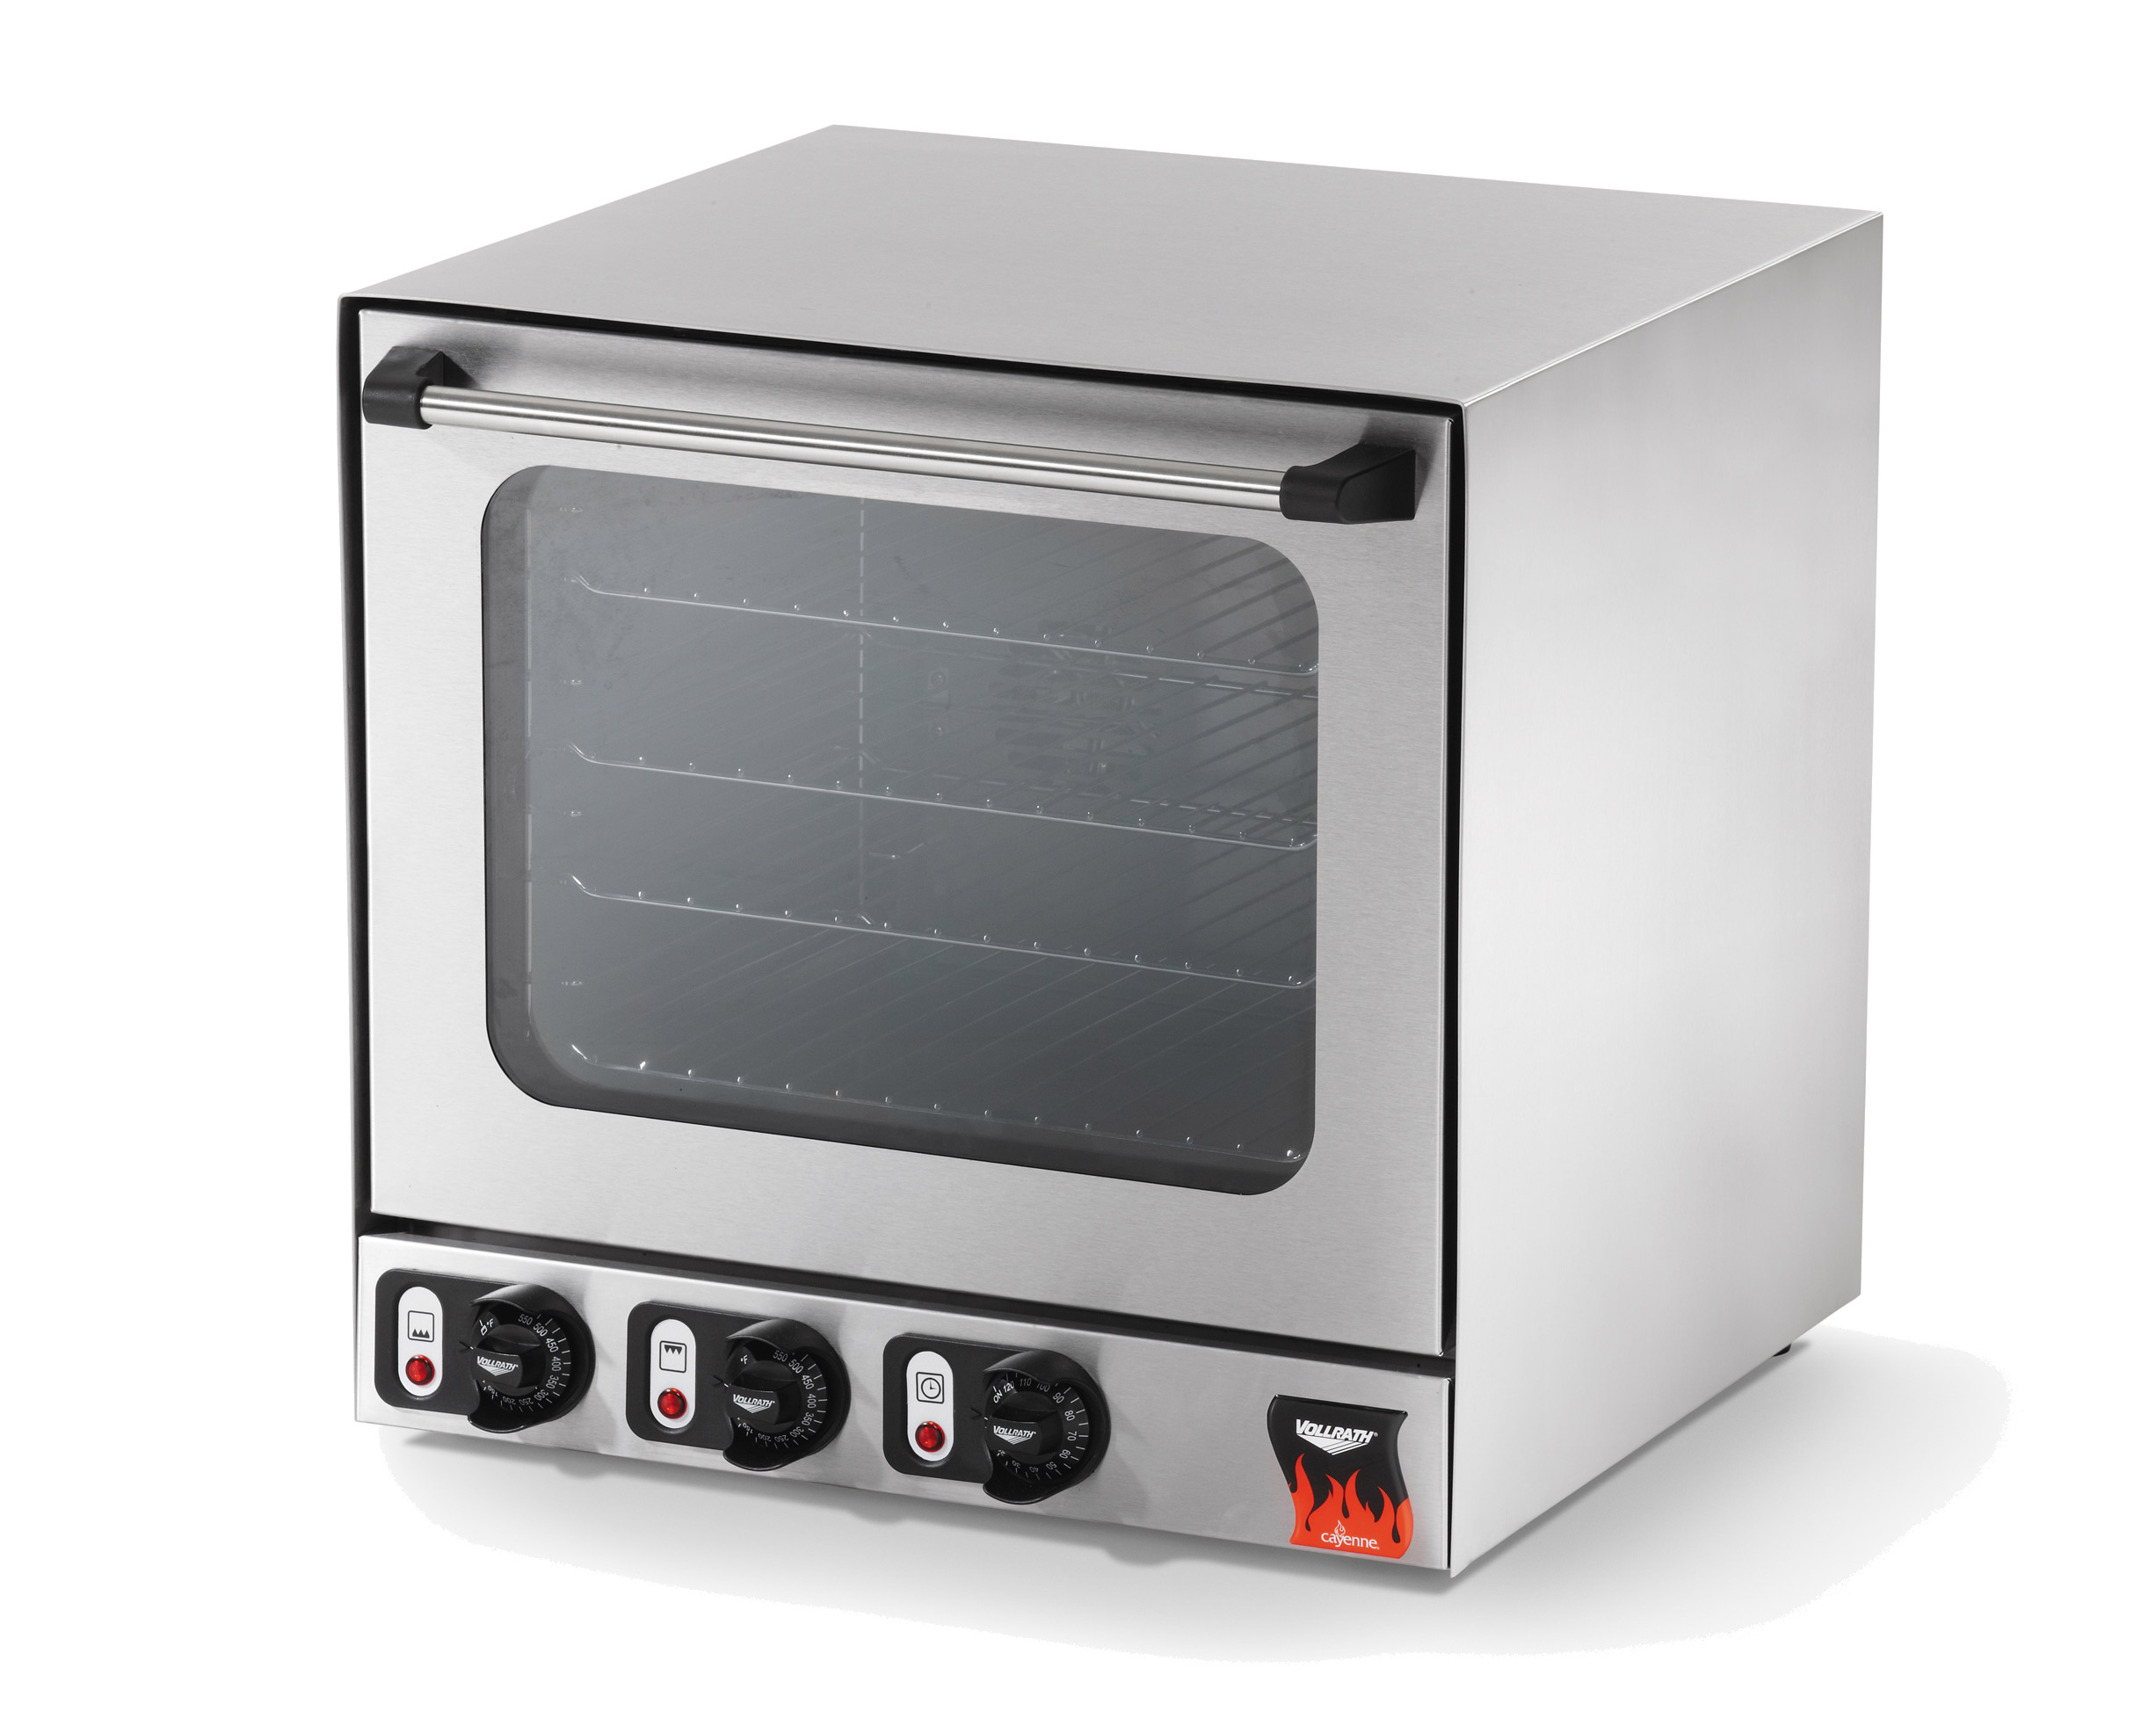 Vollrath 40701 convection oven, electric